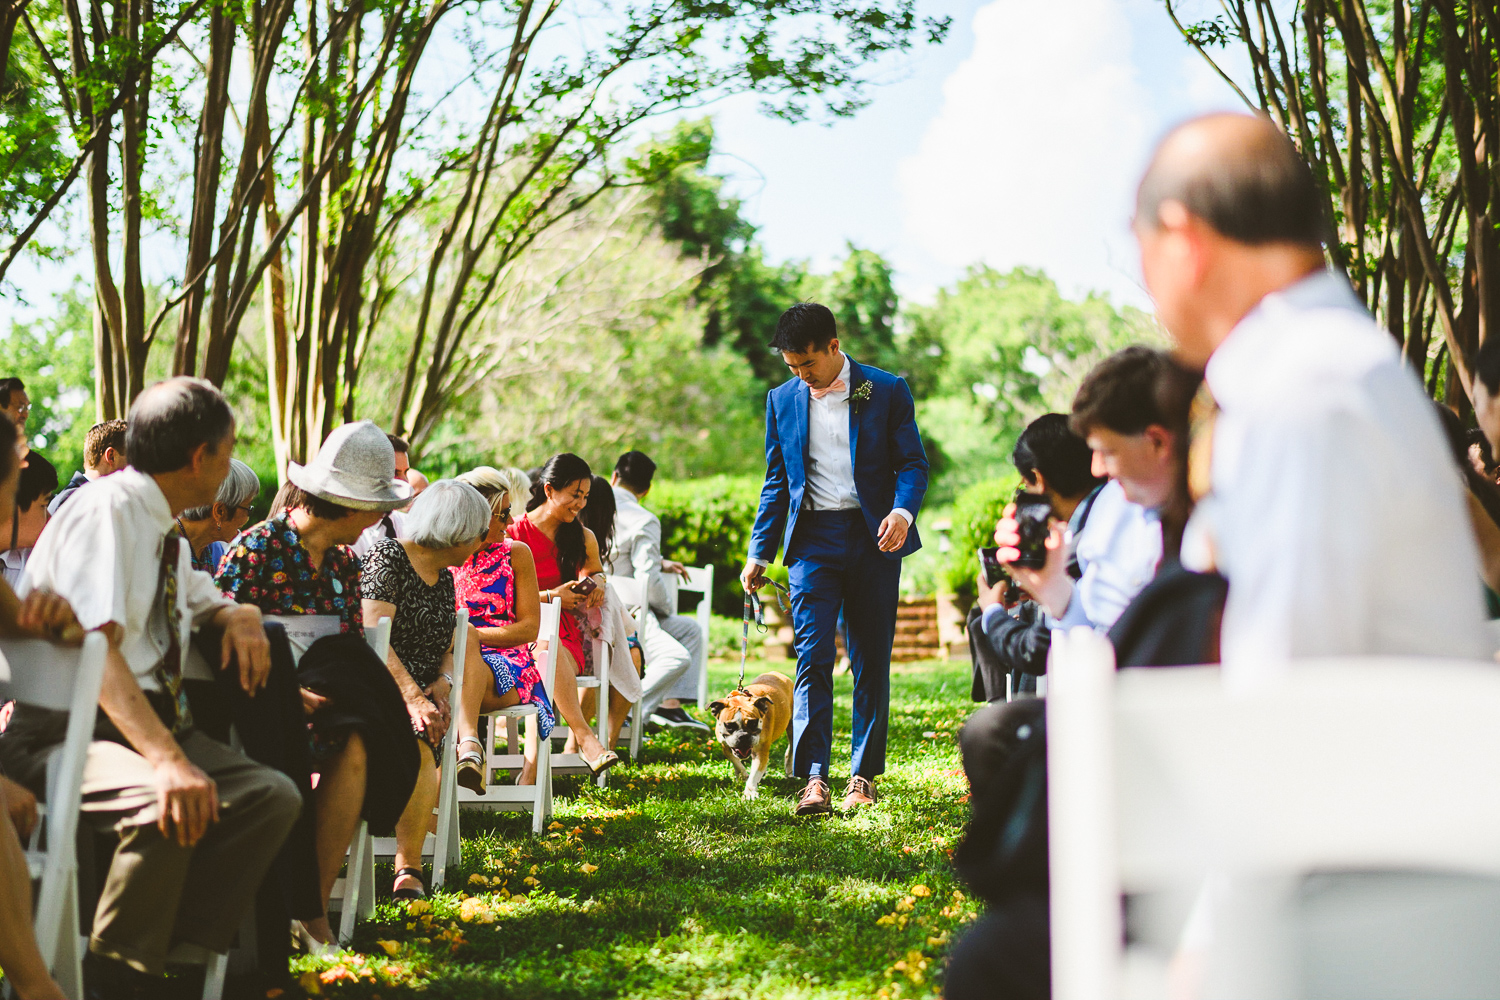 024 - dog walking down the wedding aisle.jpg